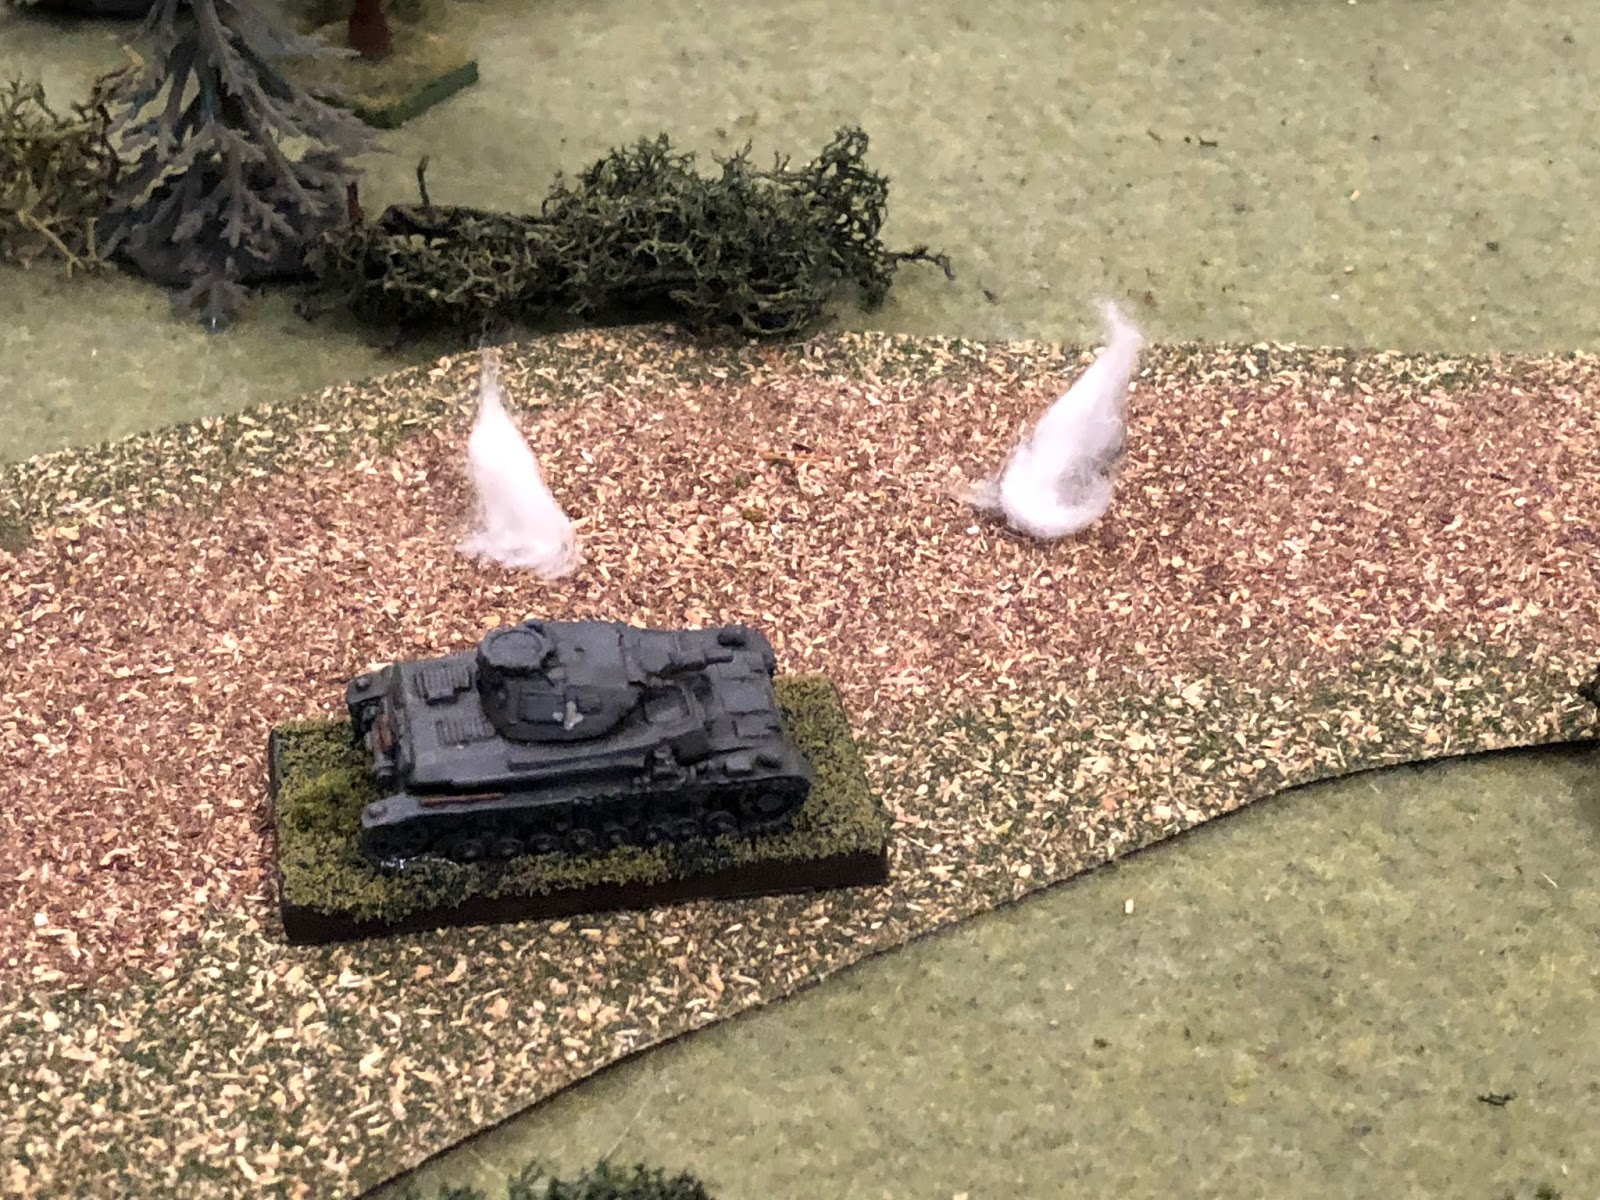 Sgt Kapps' vehicle pushes through the showers of earth and shell fragments, unperturbed!